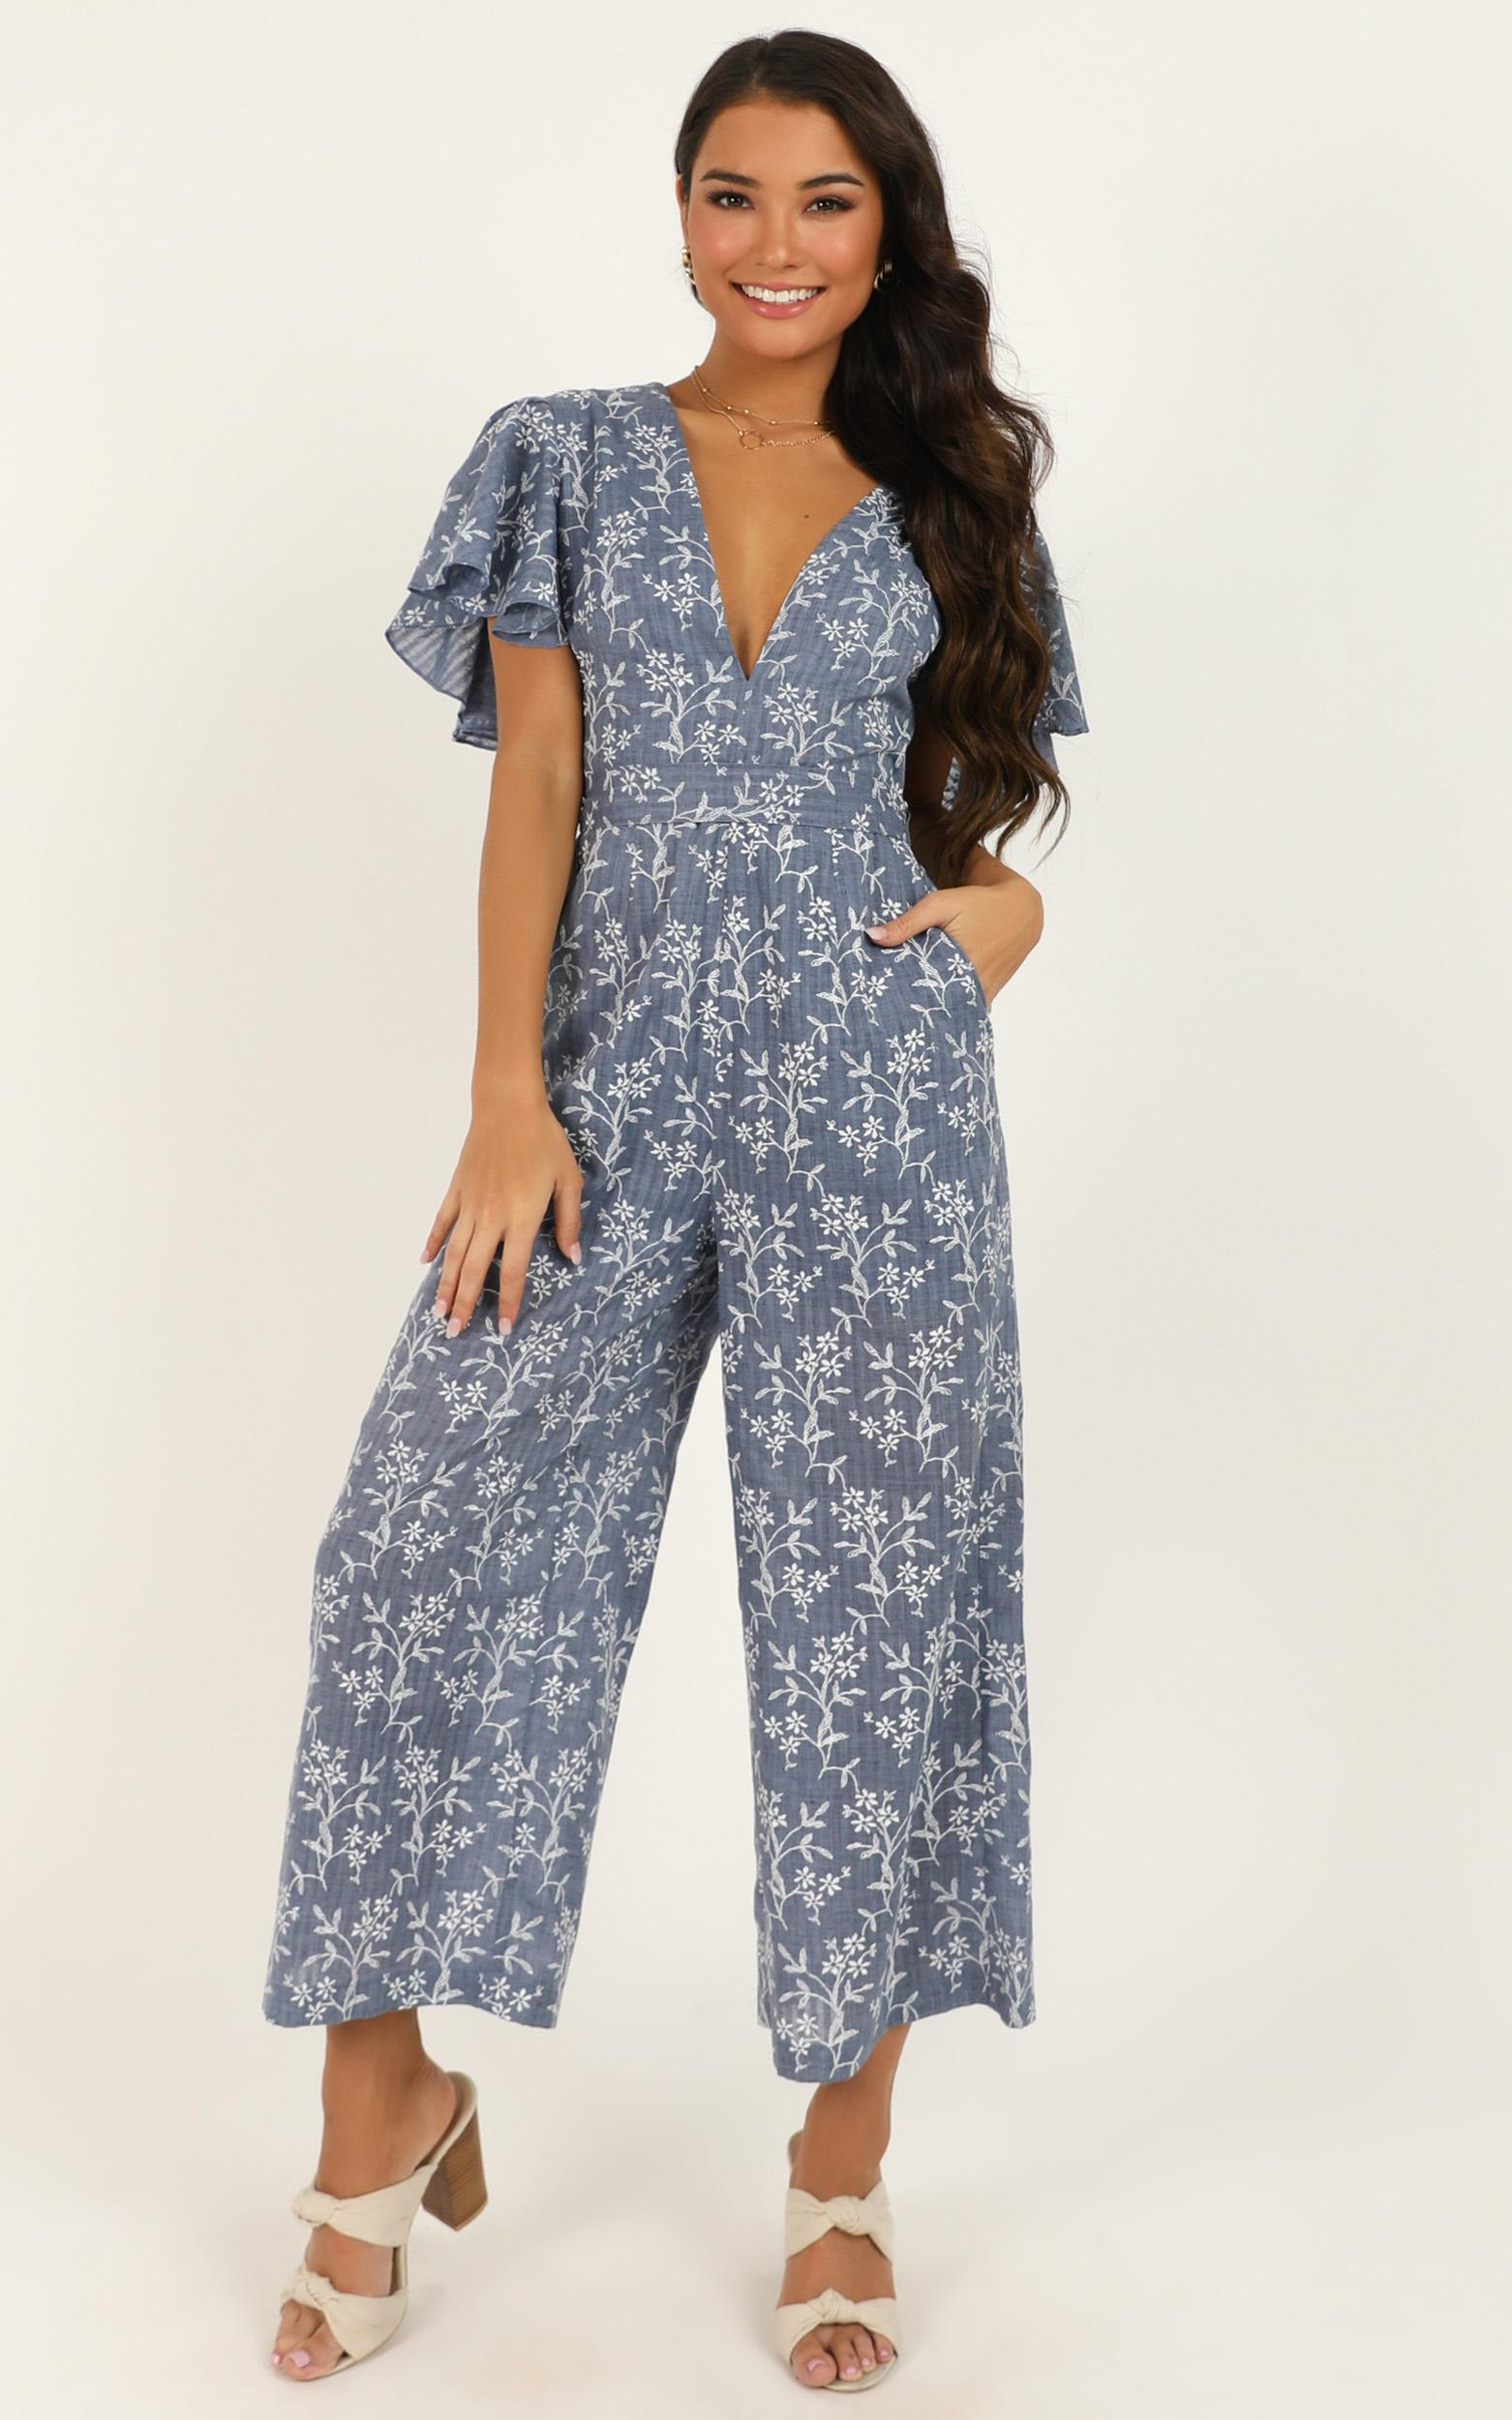 Real Reflections Jumpsuit in blue floral - 20 (XXXXL), Blue, hi-res image number null